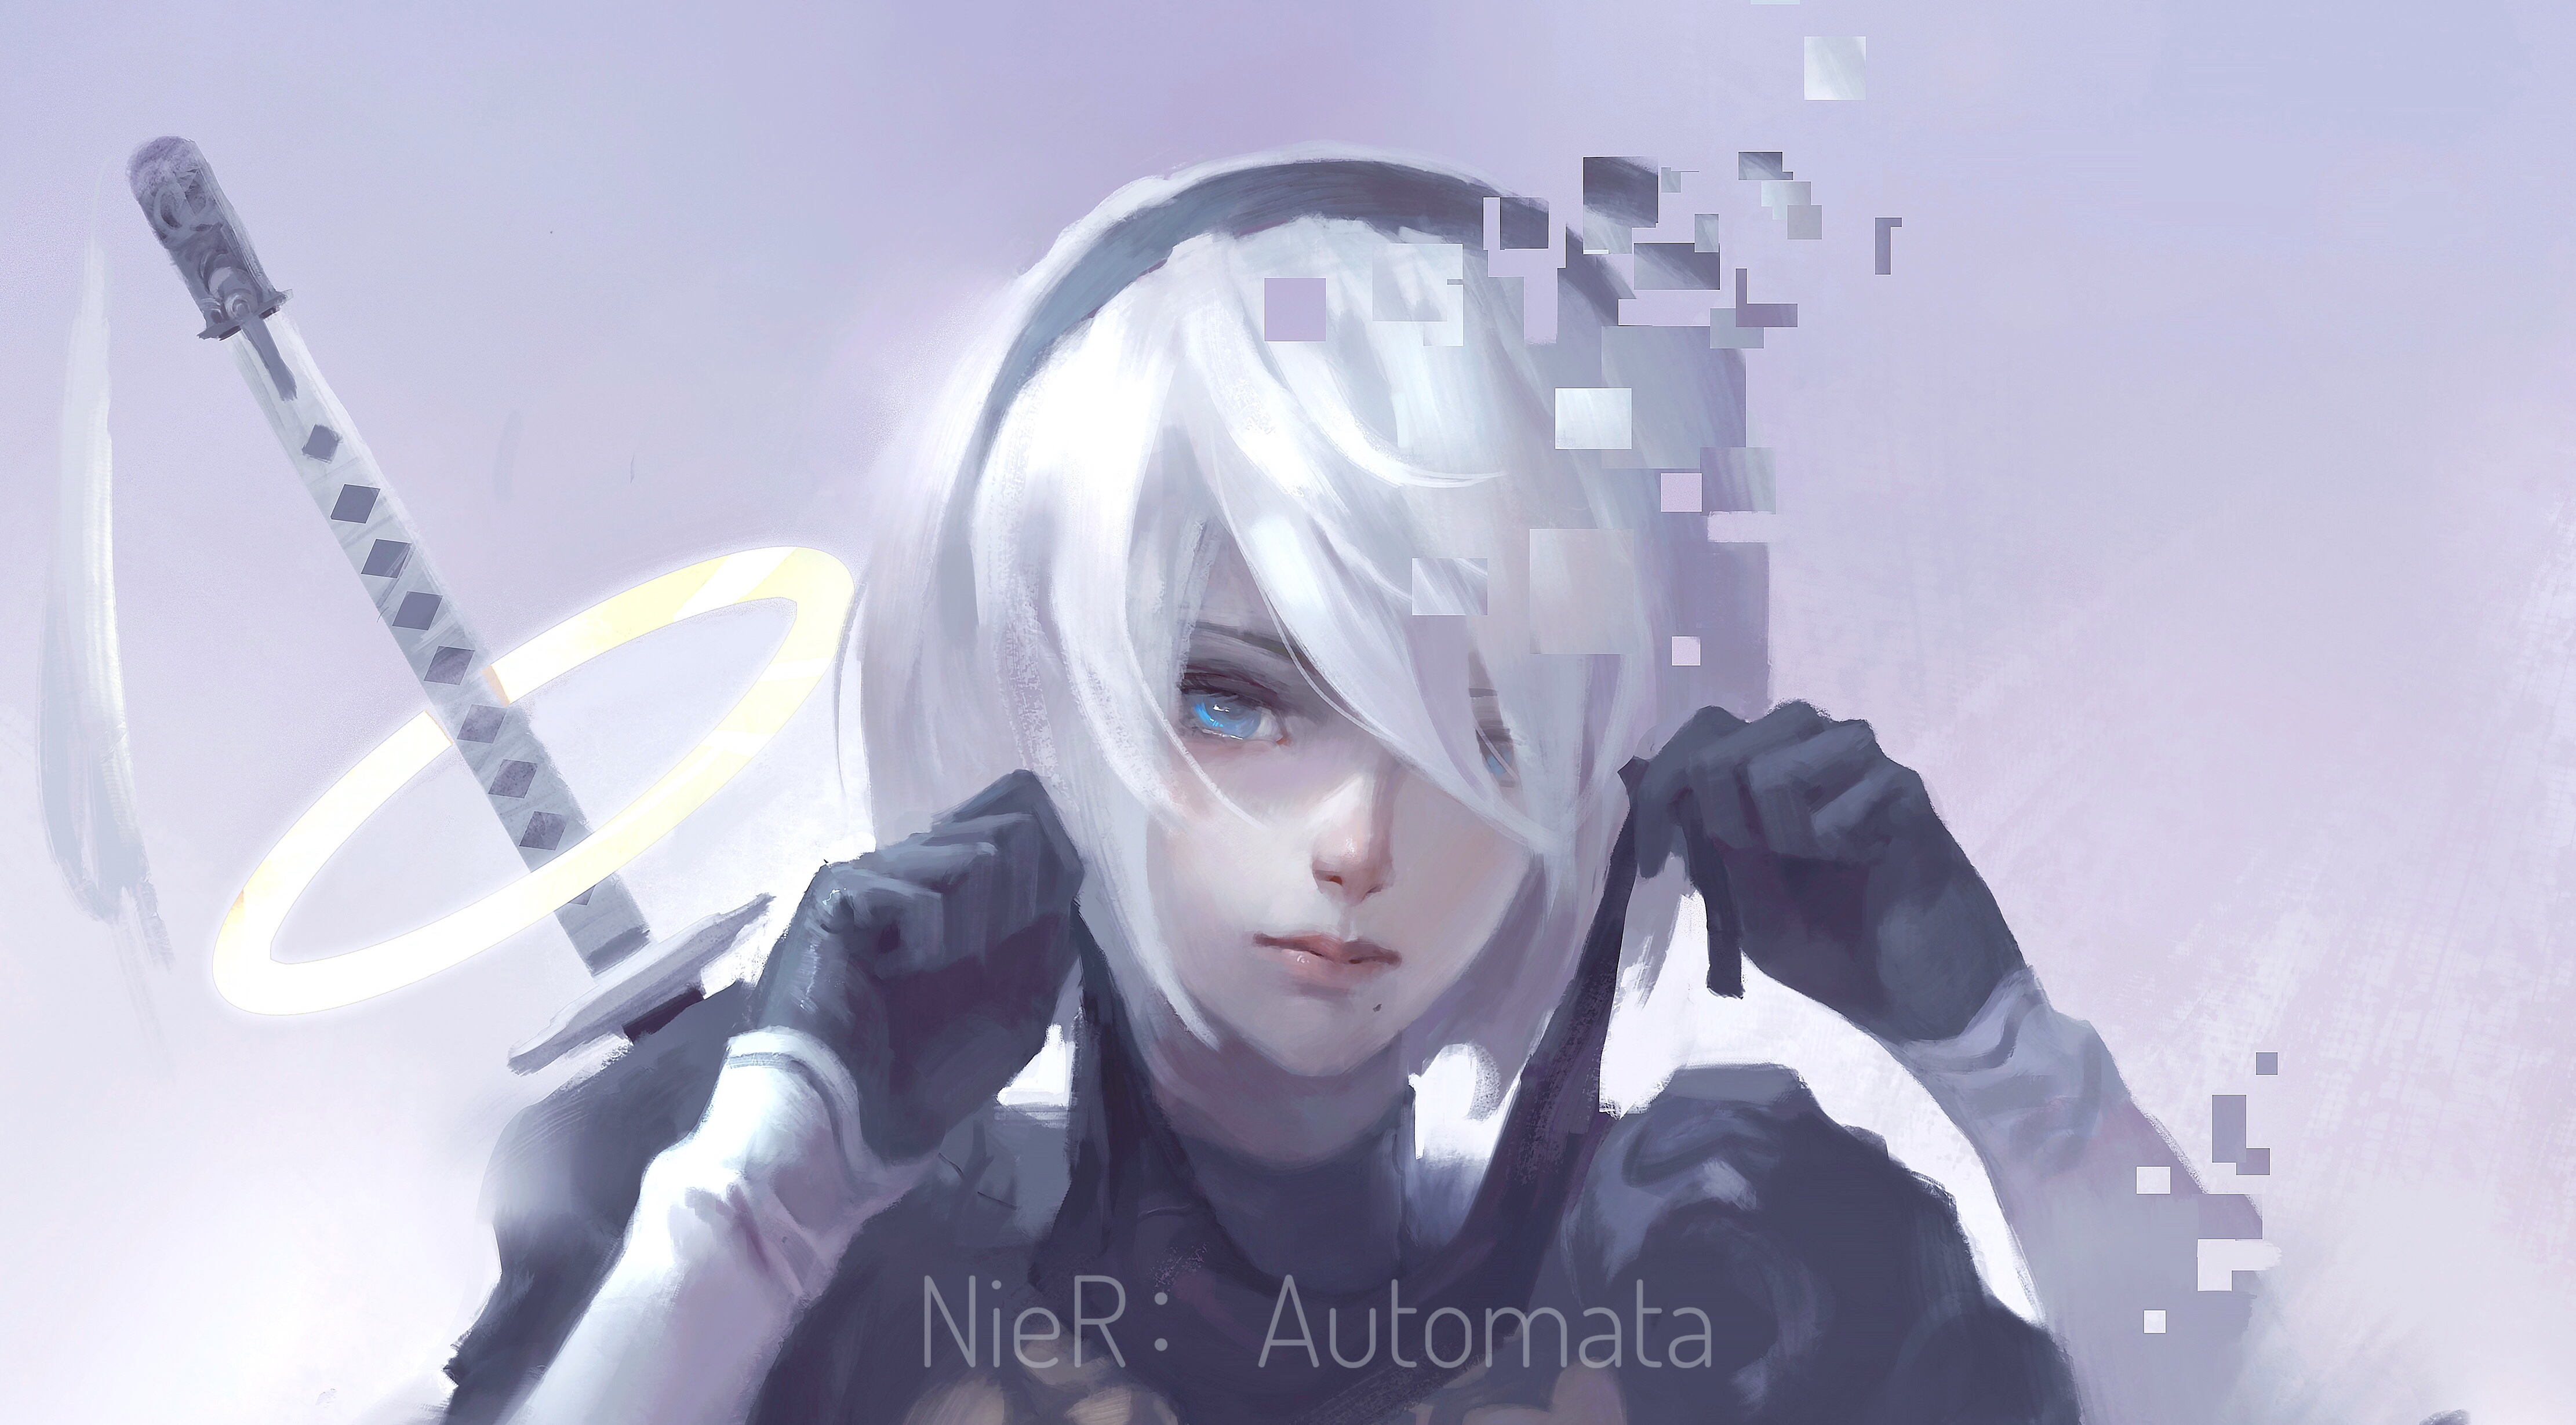 Nier Automata 2b Wallpaper 4k Posted By Ethan Thompson